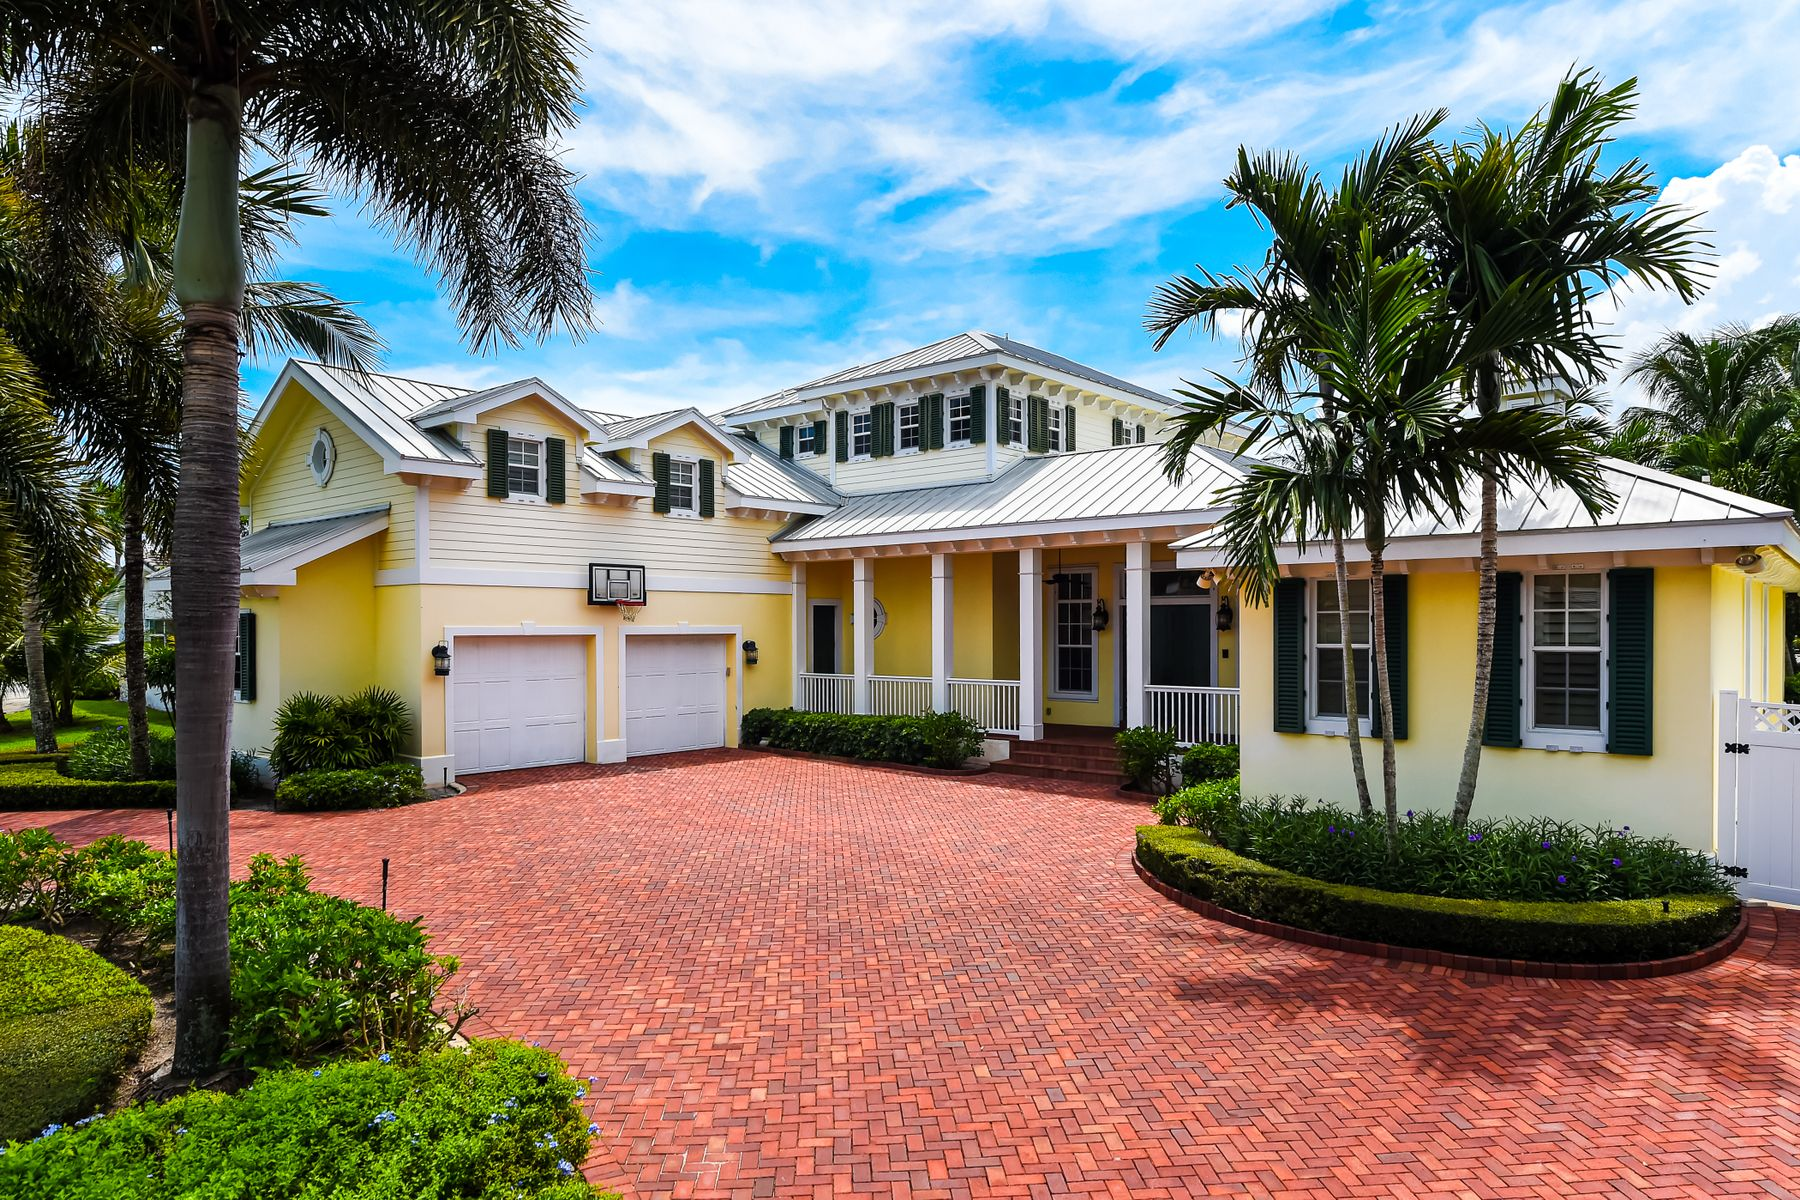 Single Family Homes for Sale at North Palm Waterfront 831 Country Club Dr, North Palm Beach, Florida 33408 United States